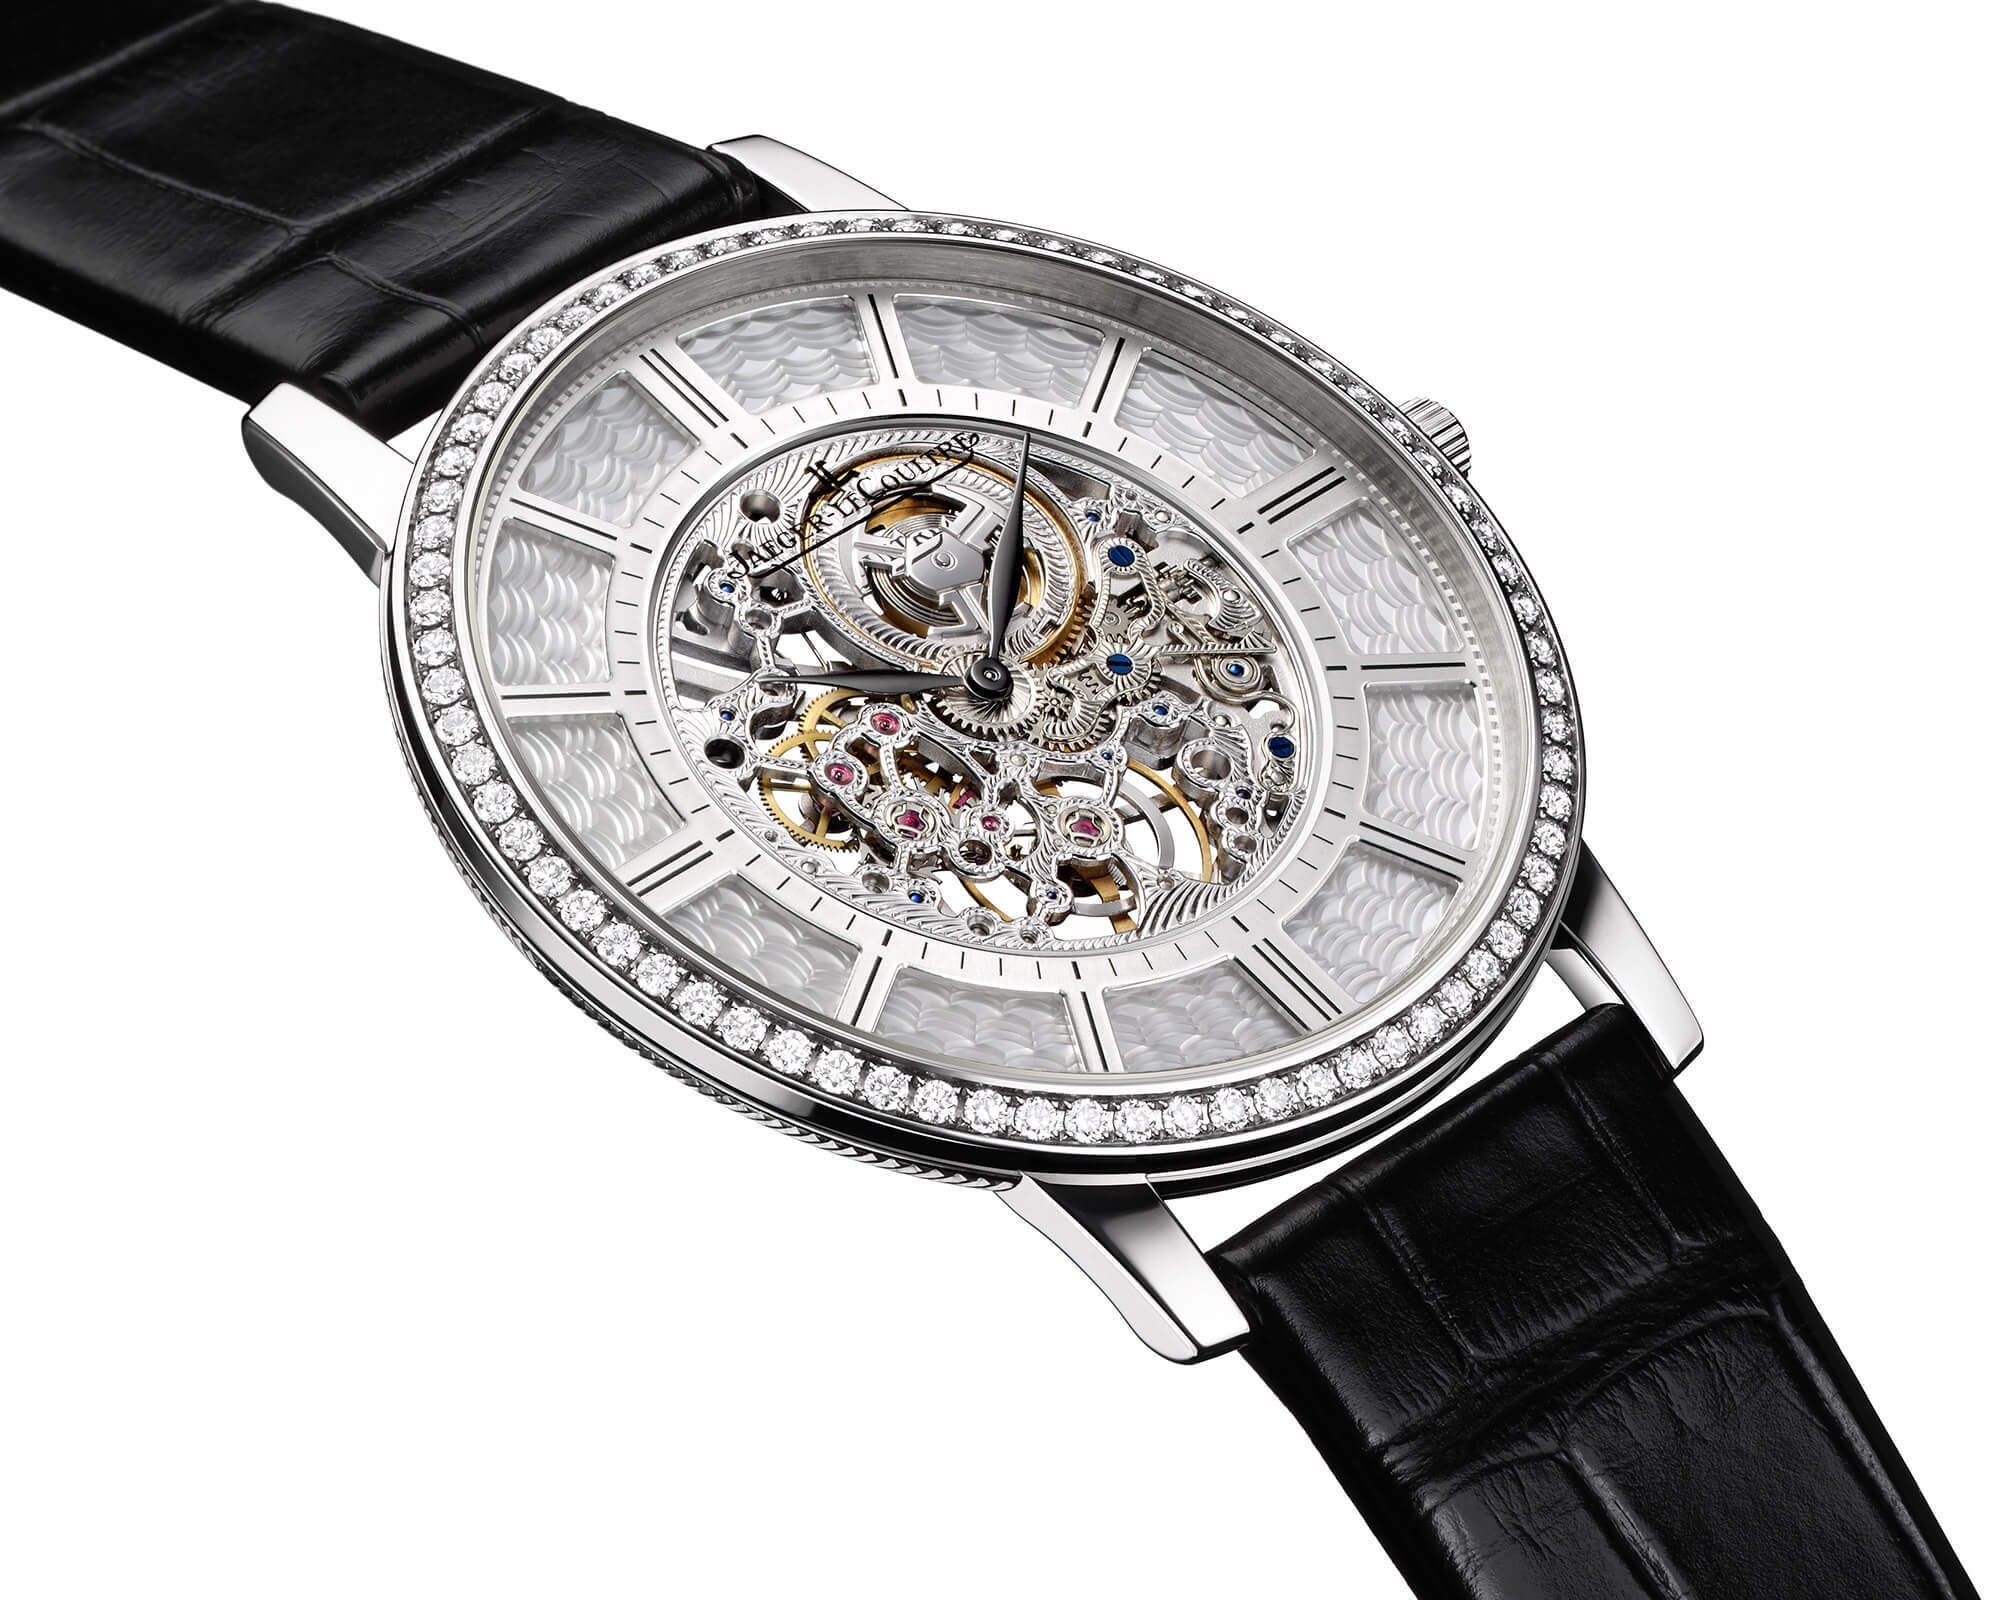 Jaeger-LeCoultre Master Ultra Thin Squelette – FHH Journal